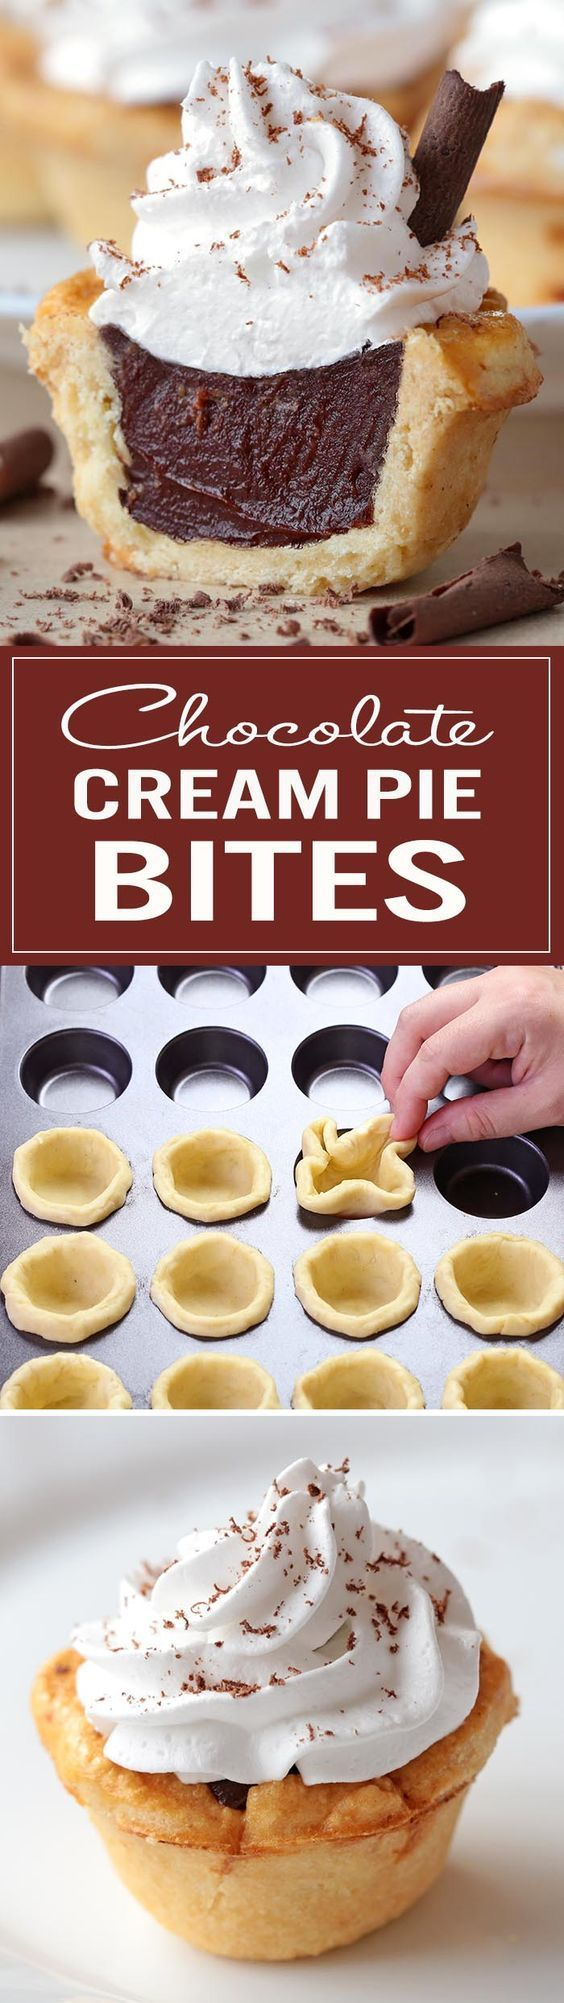 All the flavors of Homemade Chocolate Cream Pie packed into perfect bite-sized treat to share with a loved one on a special occasion – with leftovers, of course! – Chocolate Cream Pie Bites...